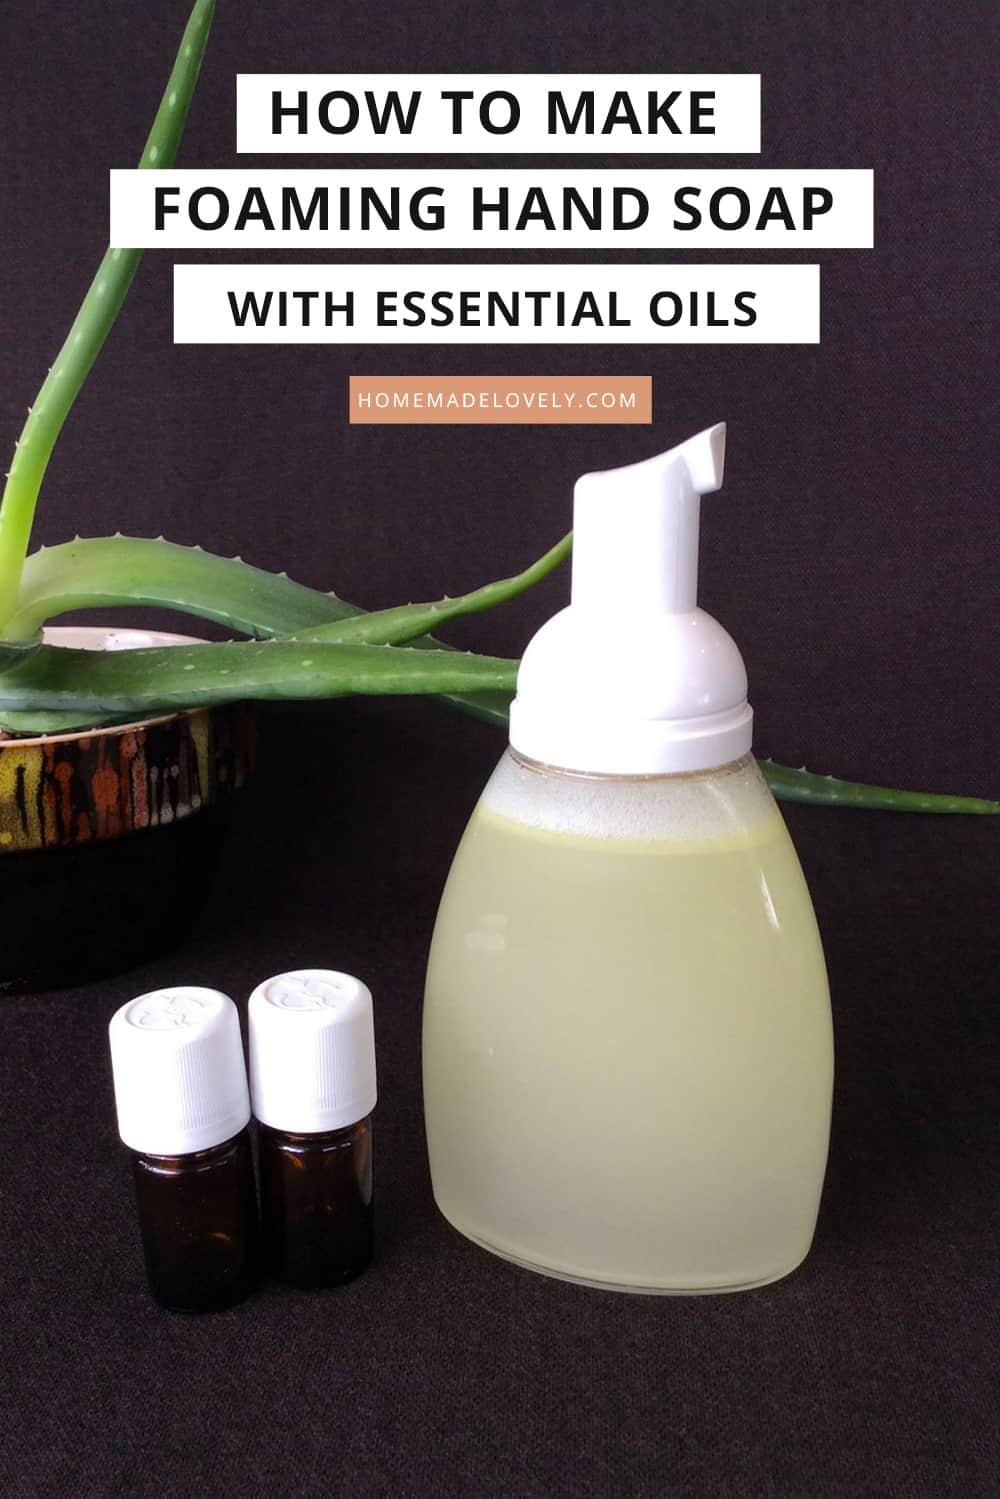 DIY Foaming Hand Soap – How to Make Foaming Hand Soap Essential Oils